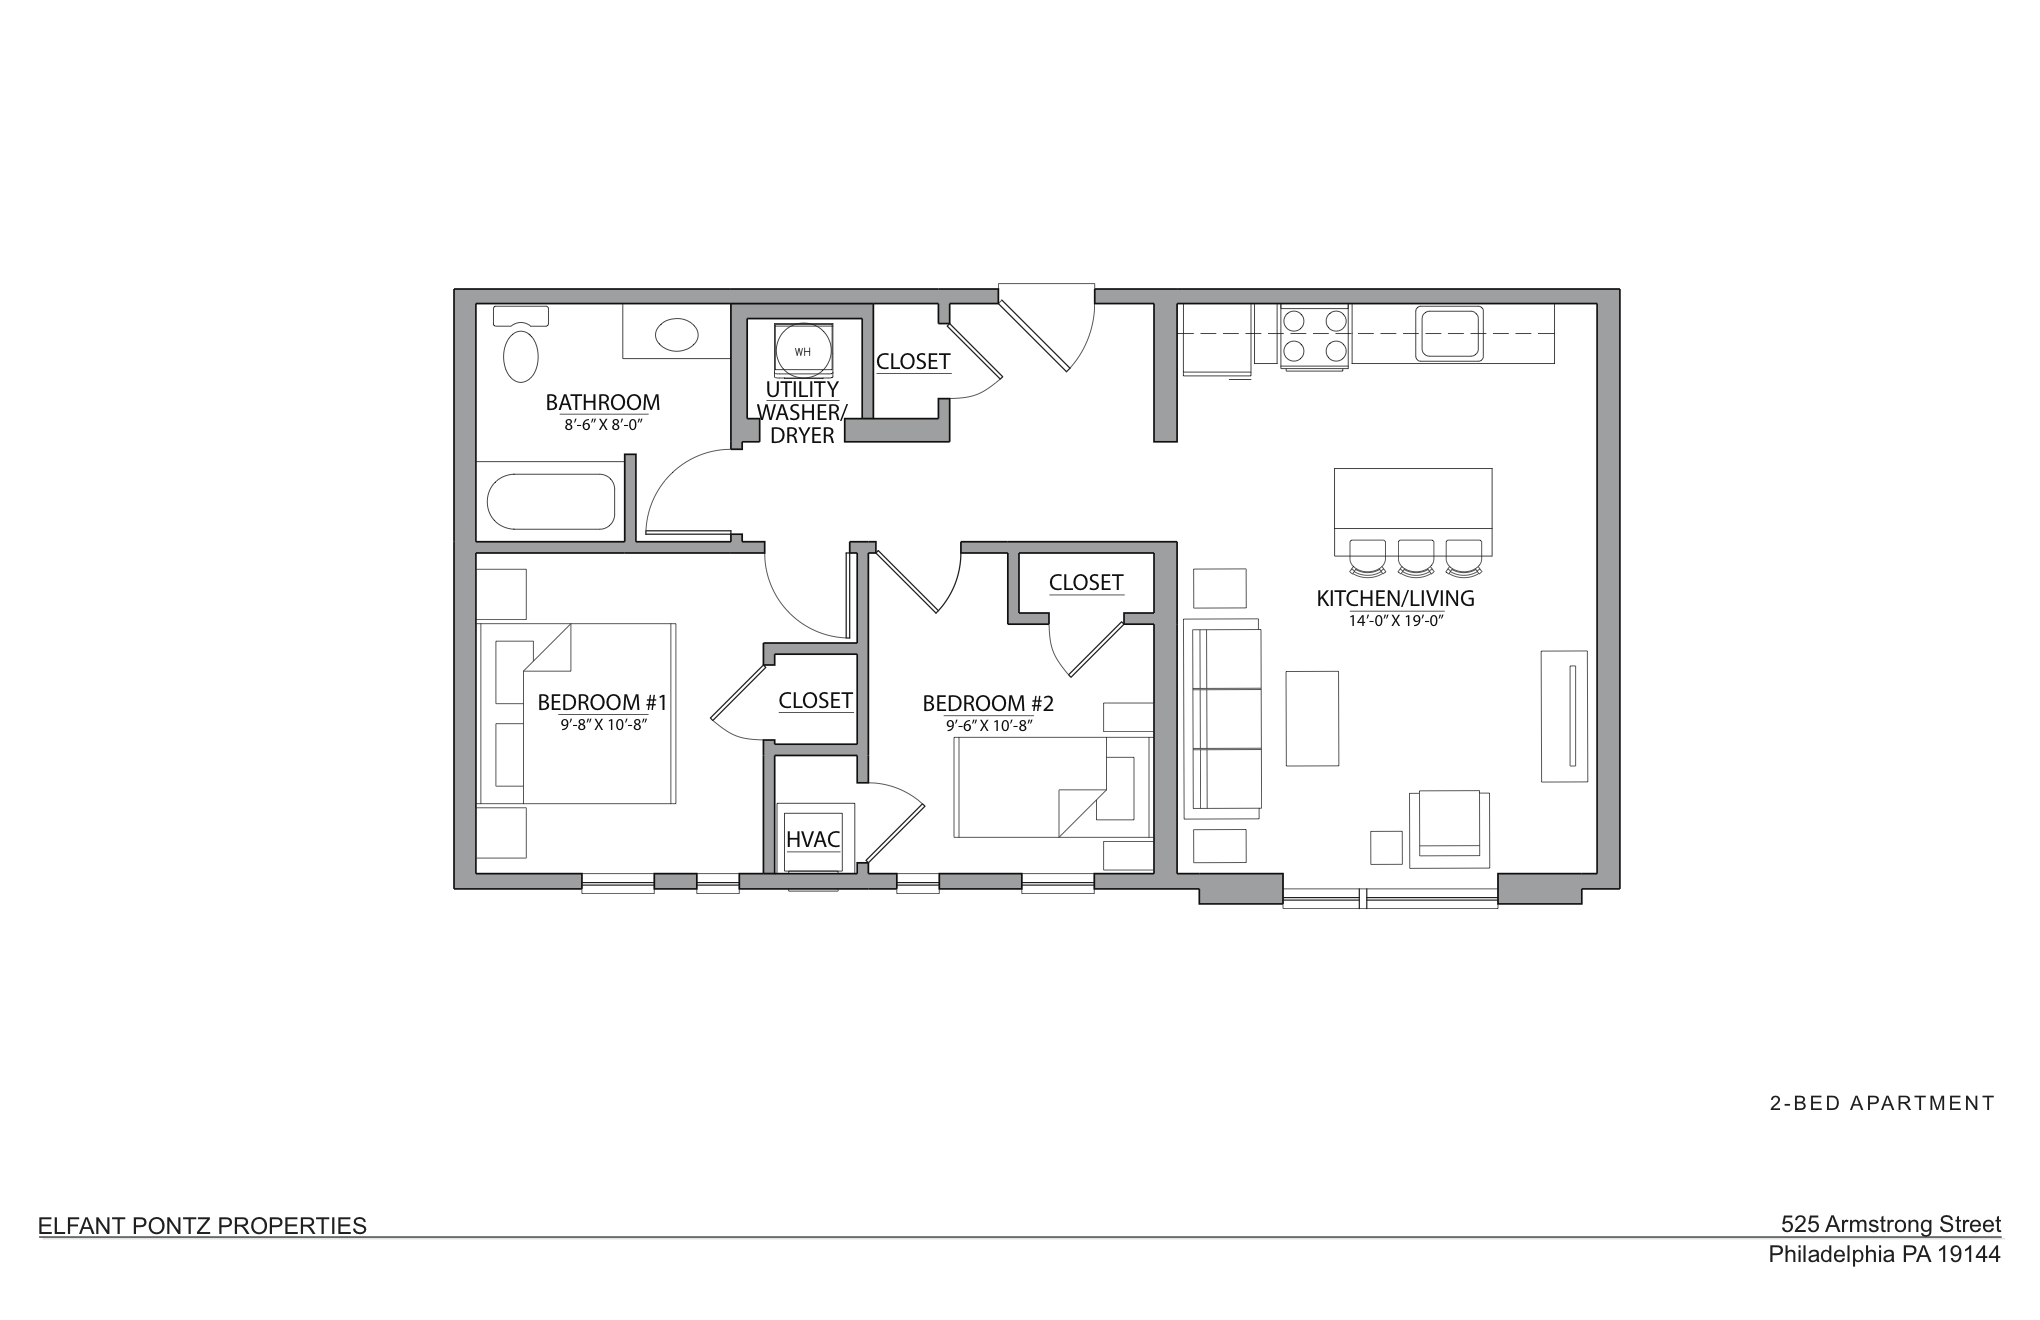 2Bed_525 Armstrong St_Floor_Plan.jpg